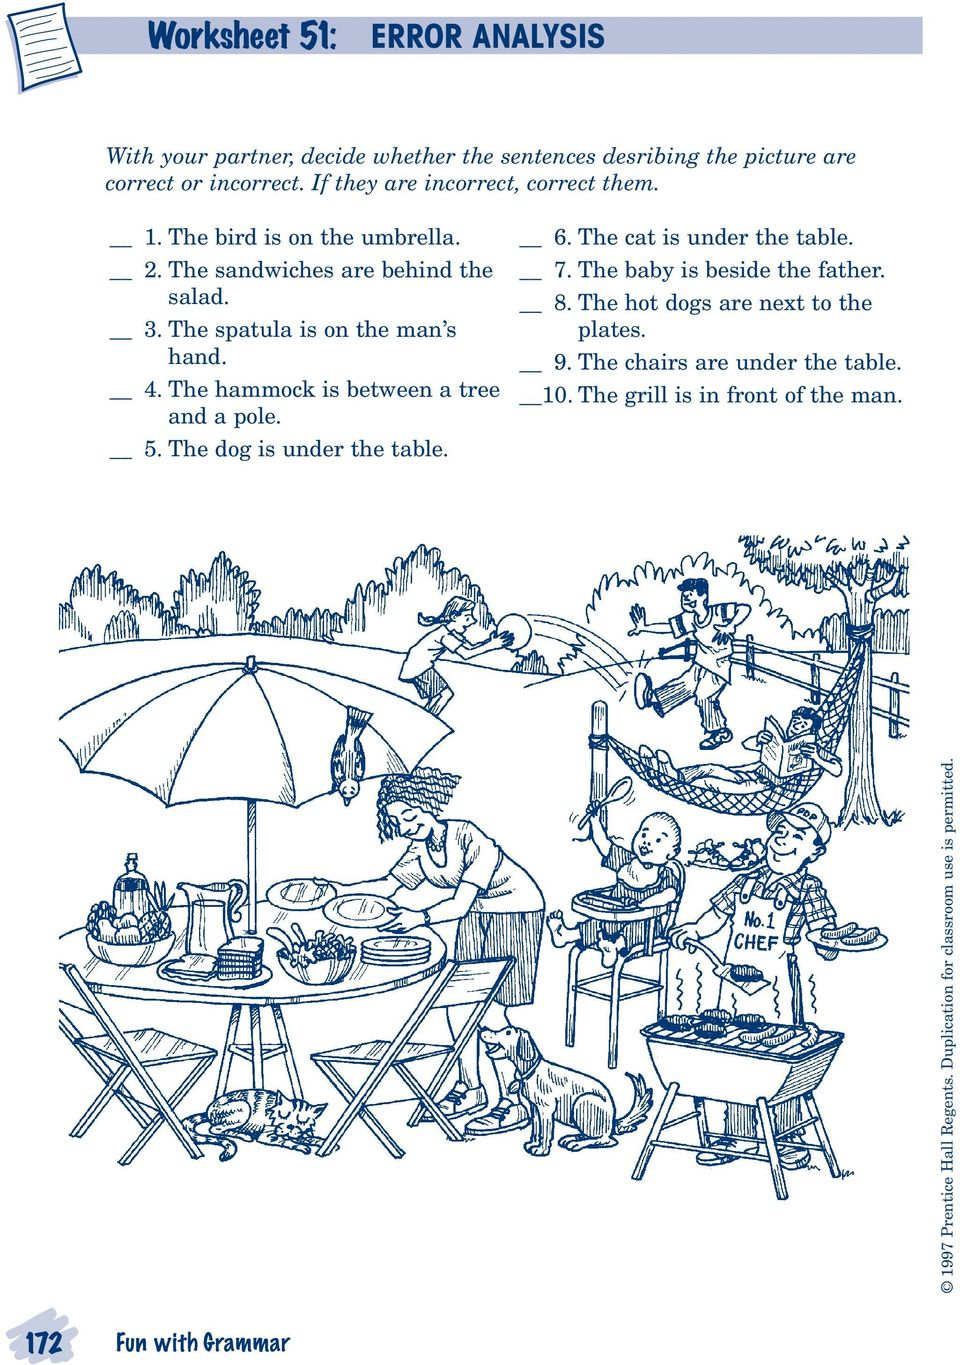 Prepositions 8.1 PREPOSITIONS OF TIME AND PLACE 8.2 PHRASAL VERBS - PDF